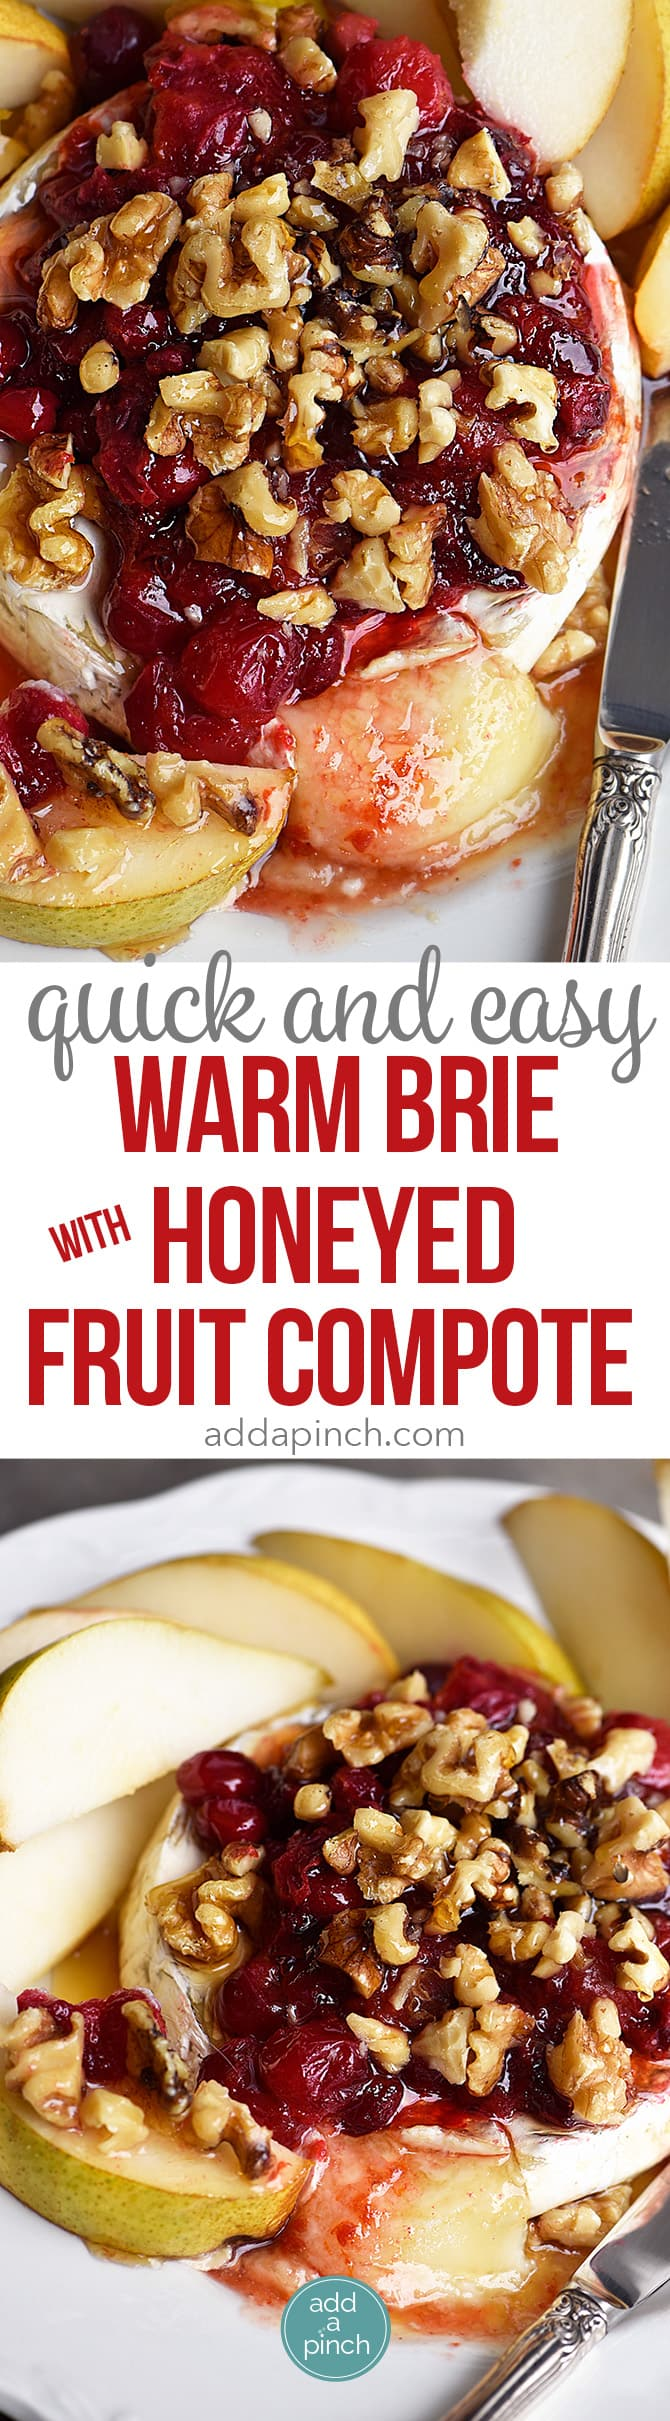 Warm Brie with Honeyed Fruit Compote makes a beautiful, quick and easy appetizer. Made with a honeyed cranberry walnut fruit compote, this baked brie recipe is festive for the holidays! // addapinch.com